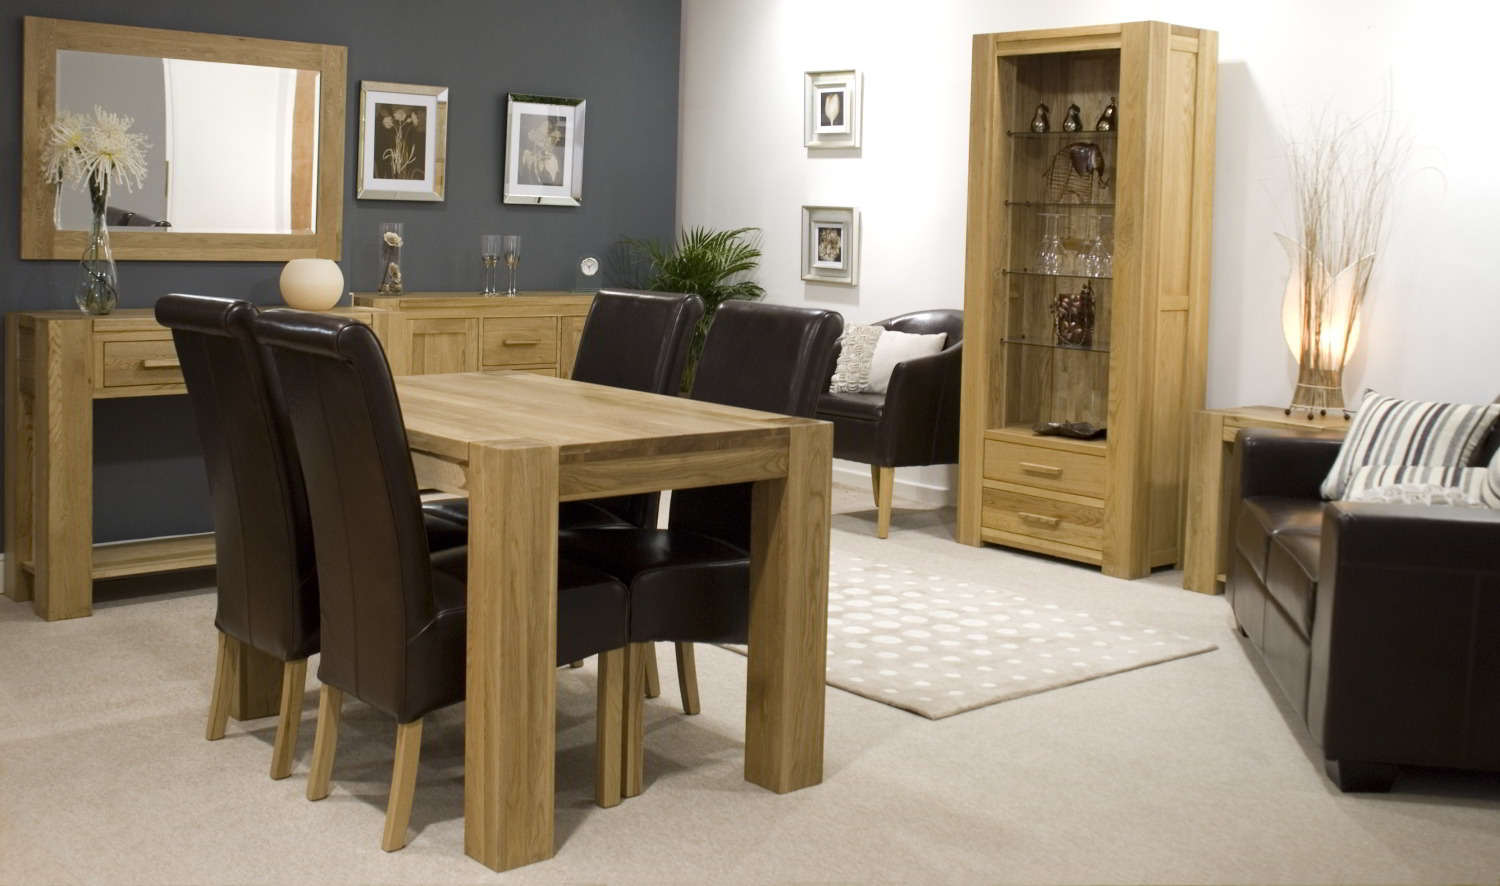 Pemberton solid oak furniture small living room office for Living area furniture